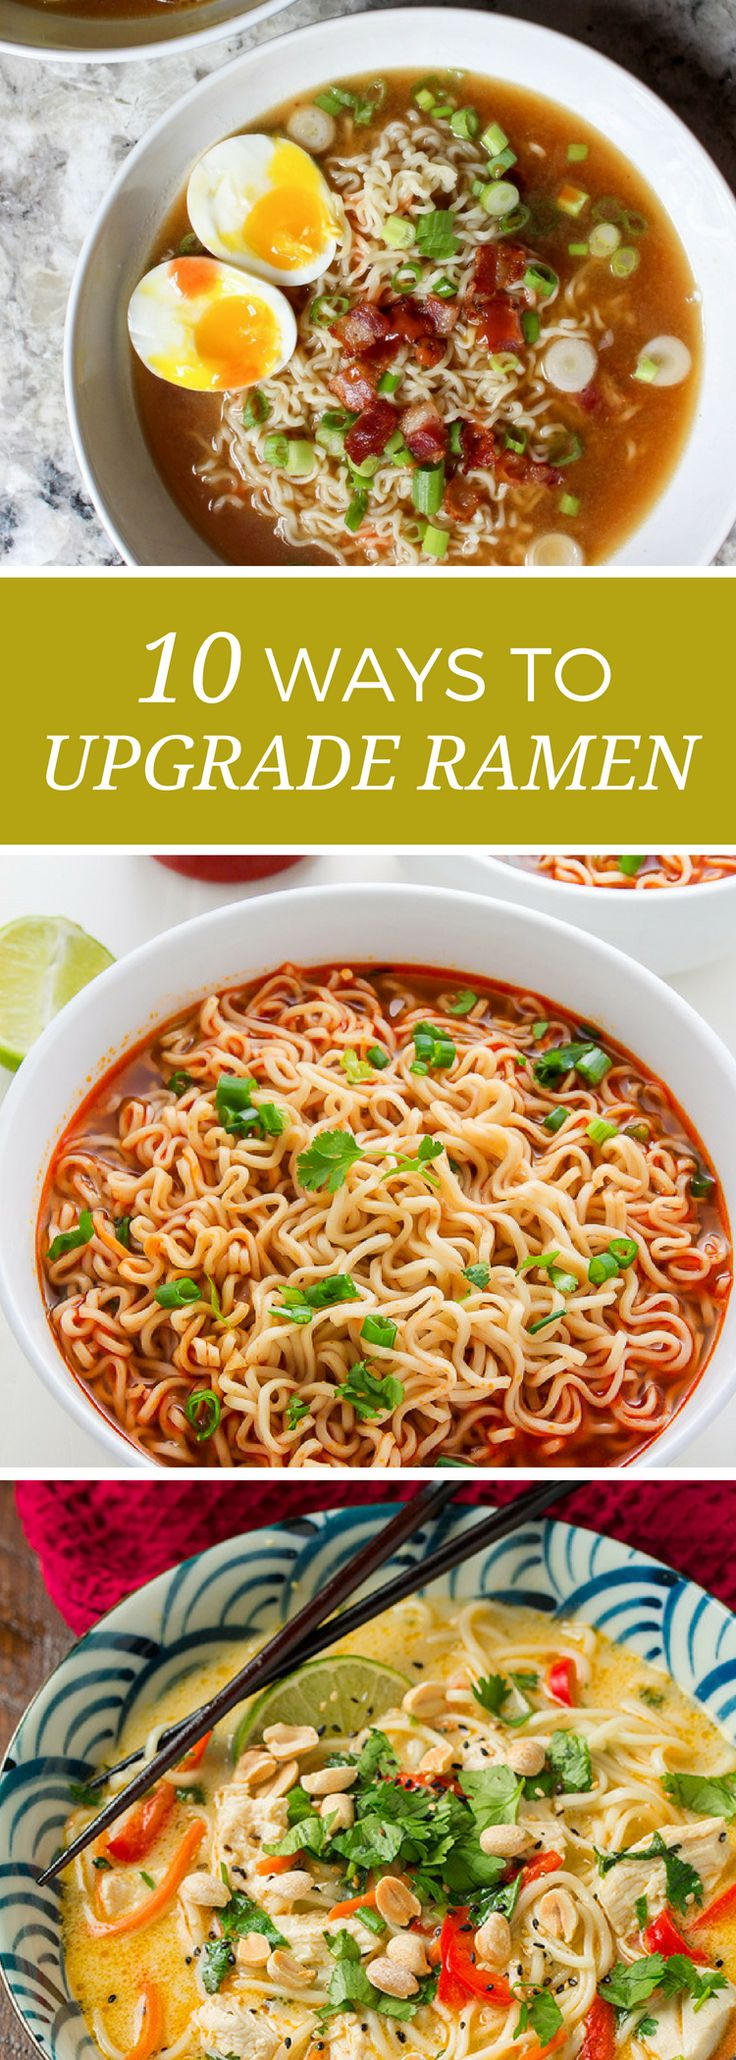 Ramen is the ultimate budget pantry staple. Eating on budget doesn't have to mean sacrificing flavor! Try these 10 twists on traditional ramen.